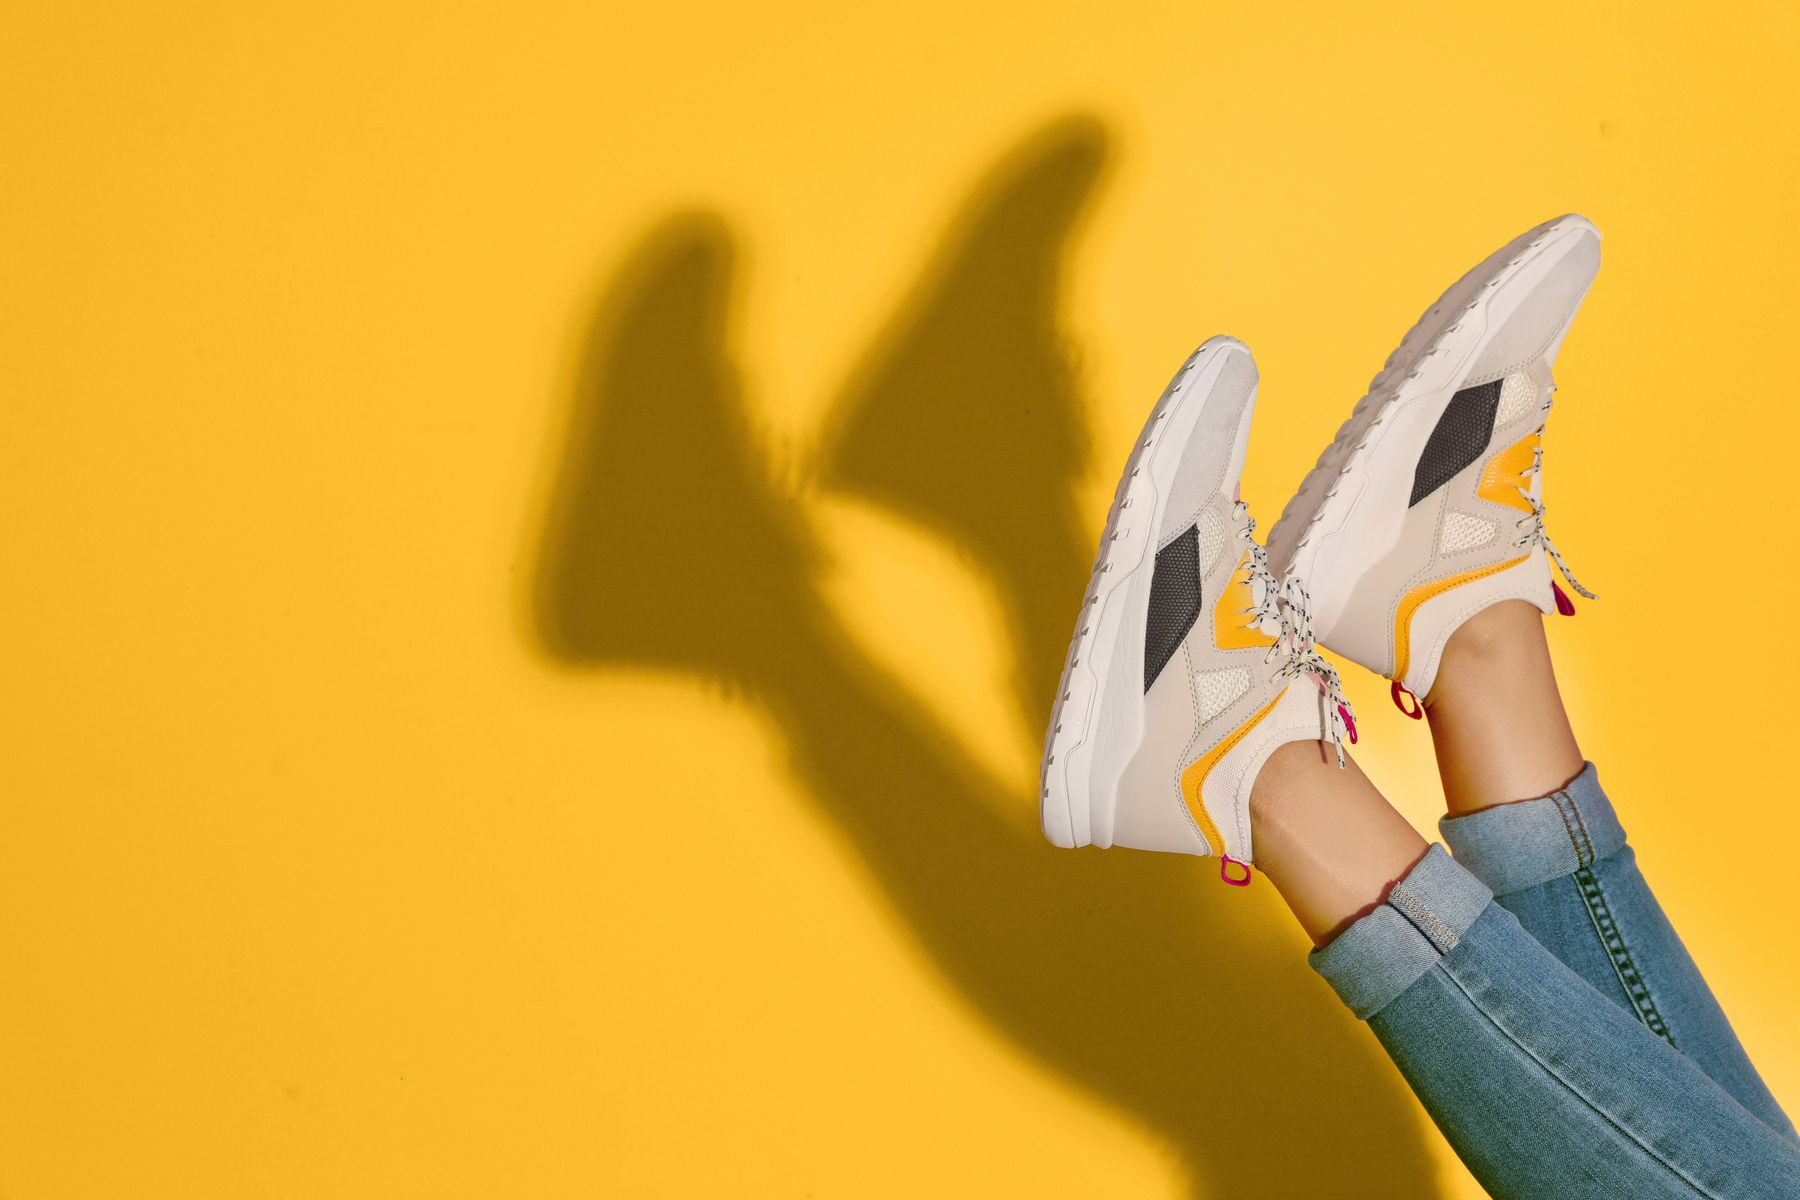 person wearing trainers on a yellow background